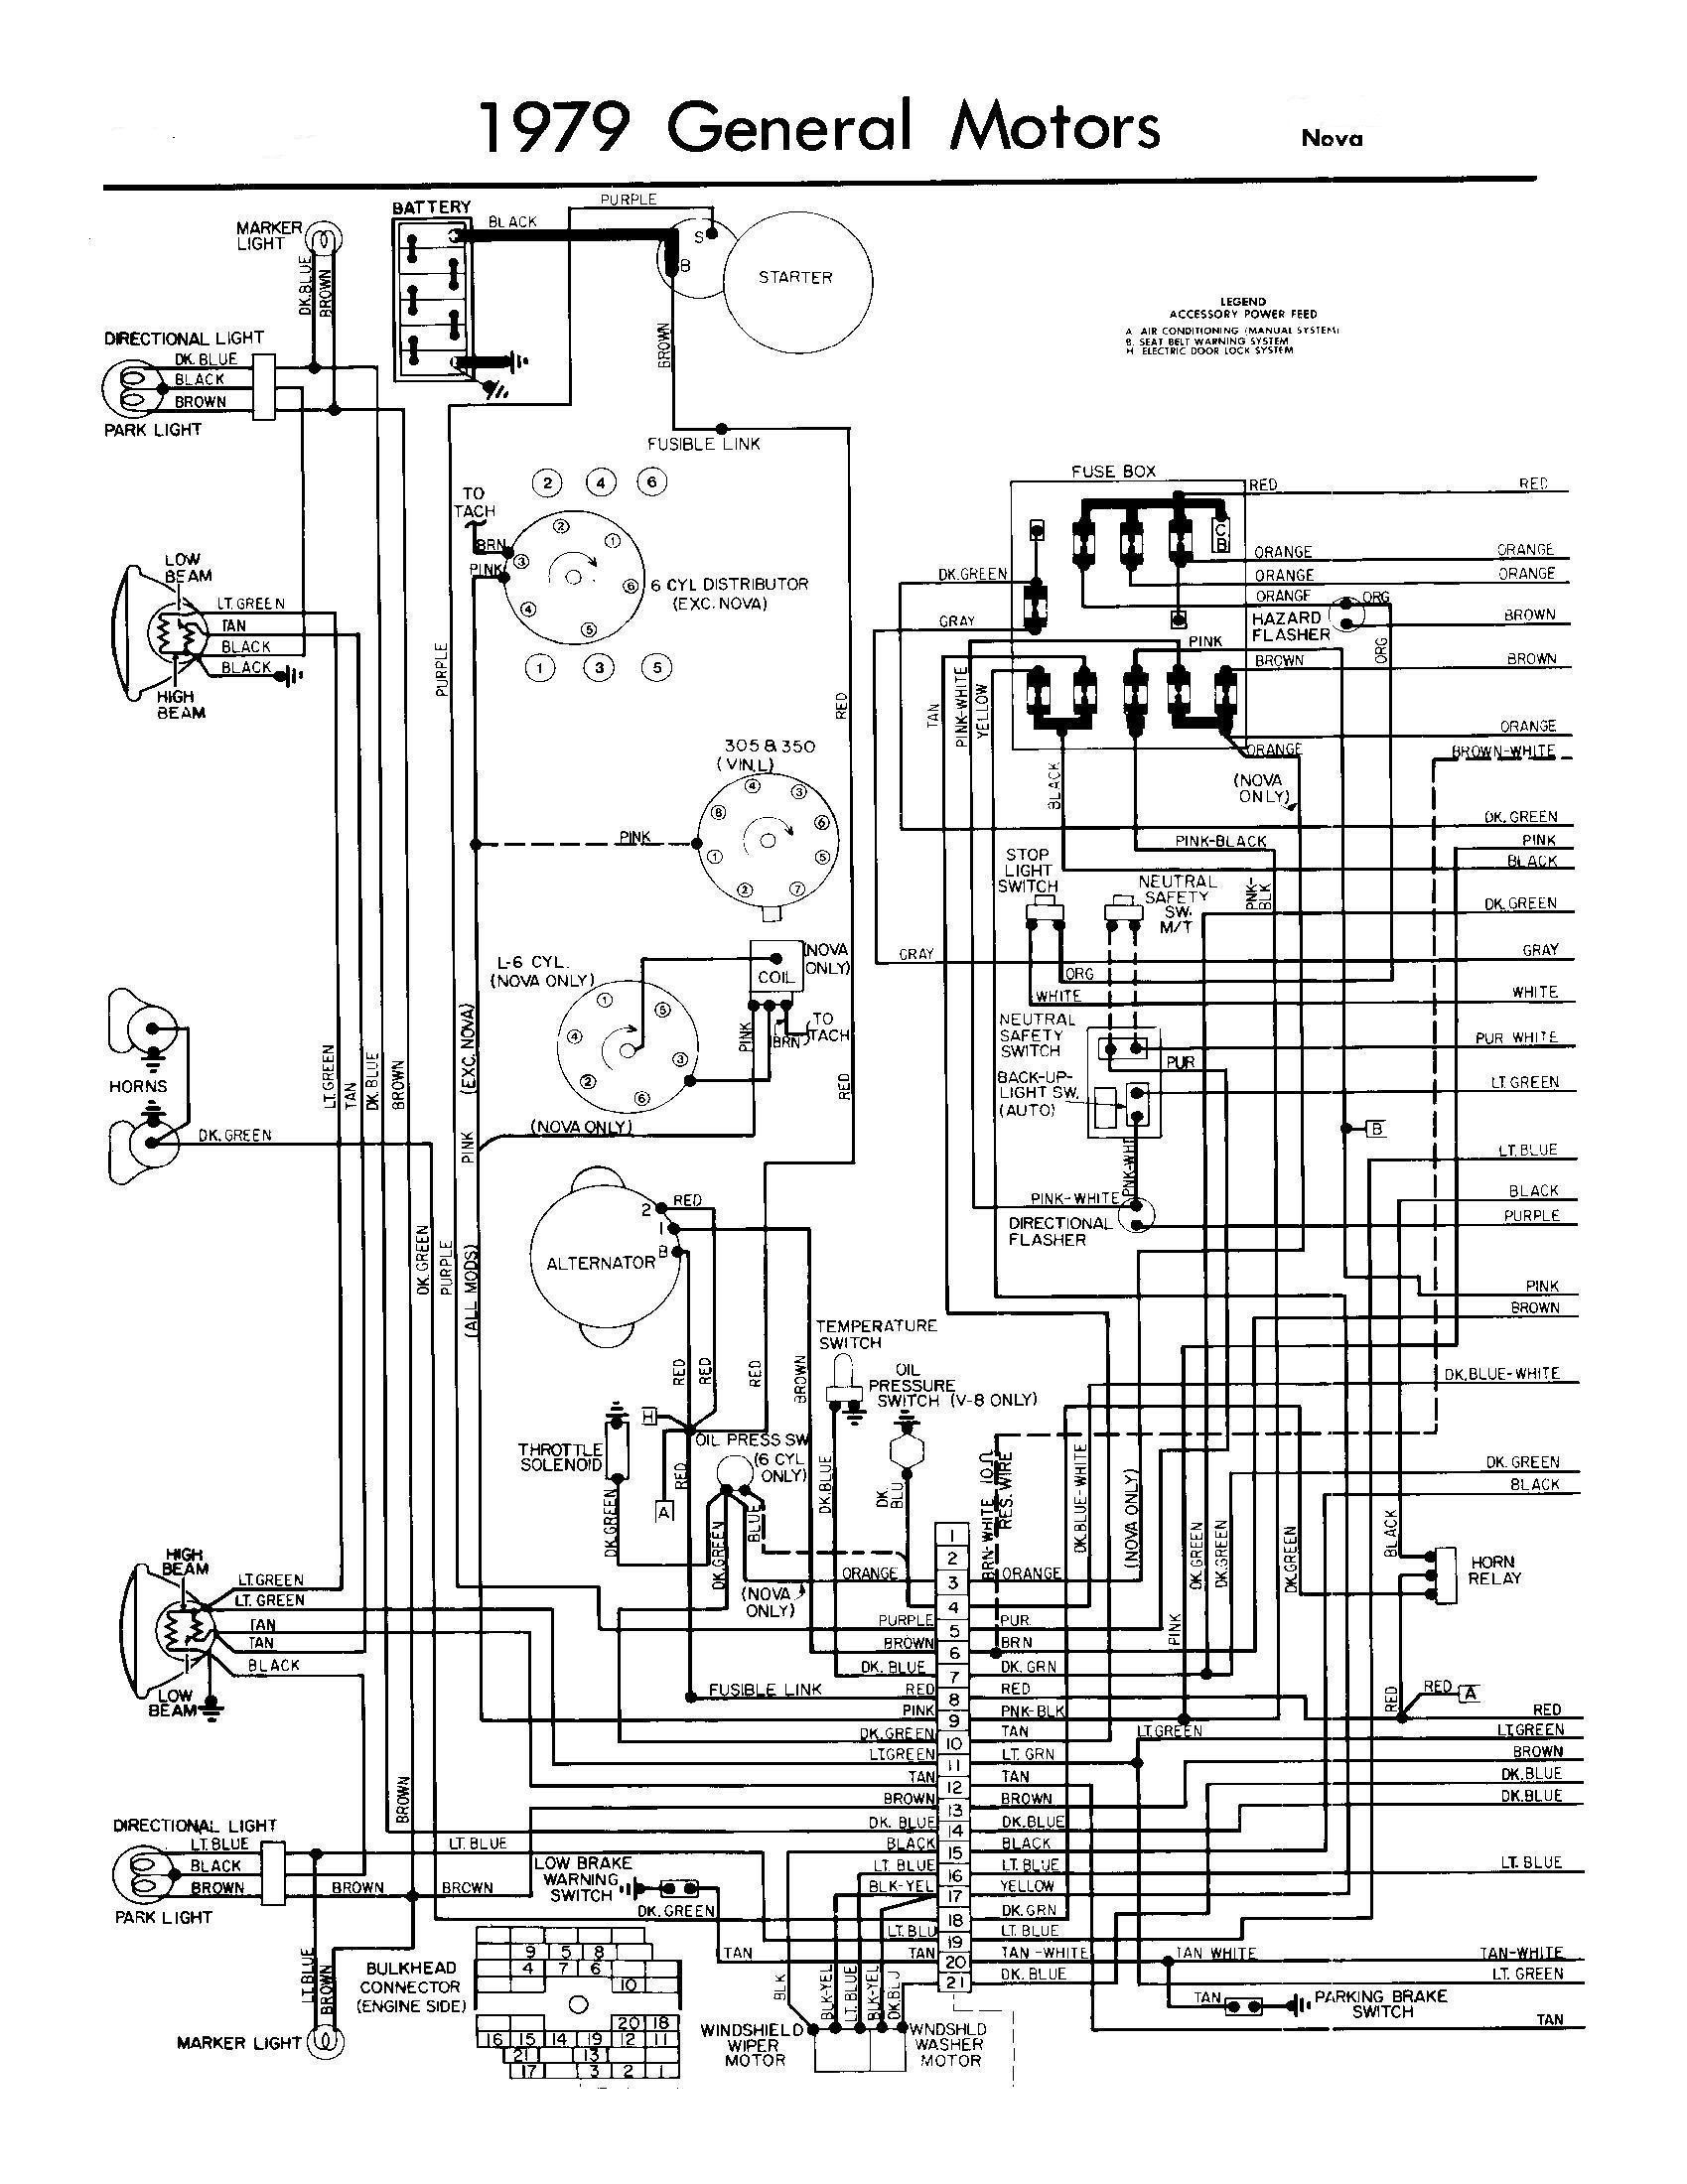 1978 chevy truck heater diagram wiring diagram 1971 firebird wiring diagram 1978 camaro wiring diagram #5